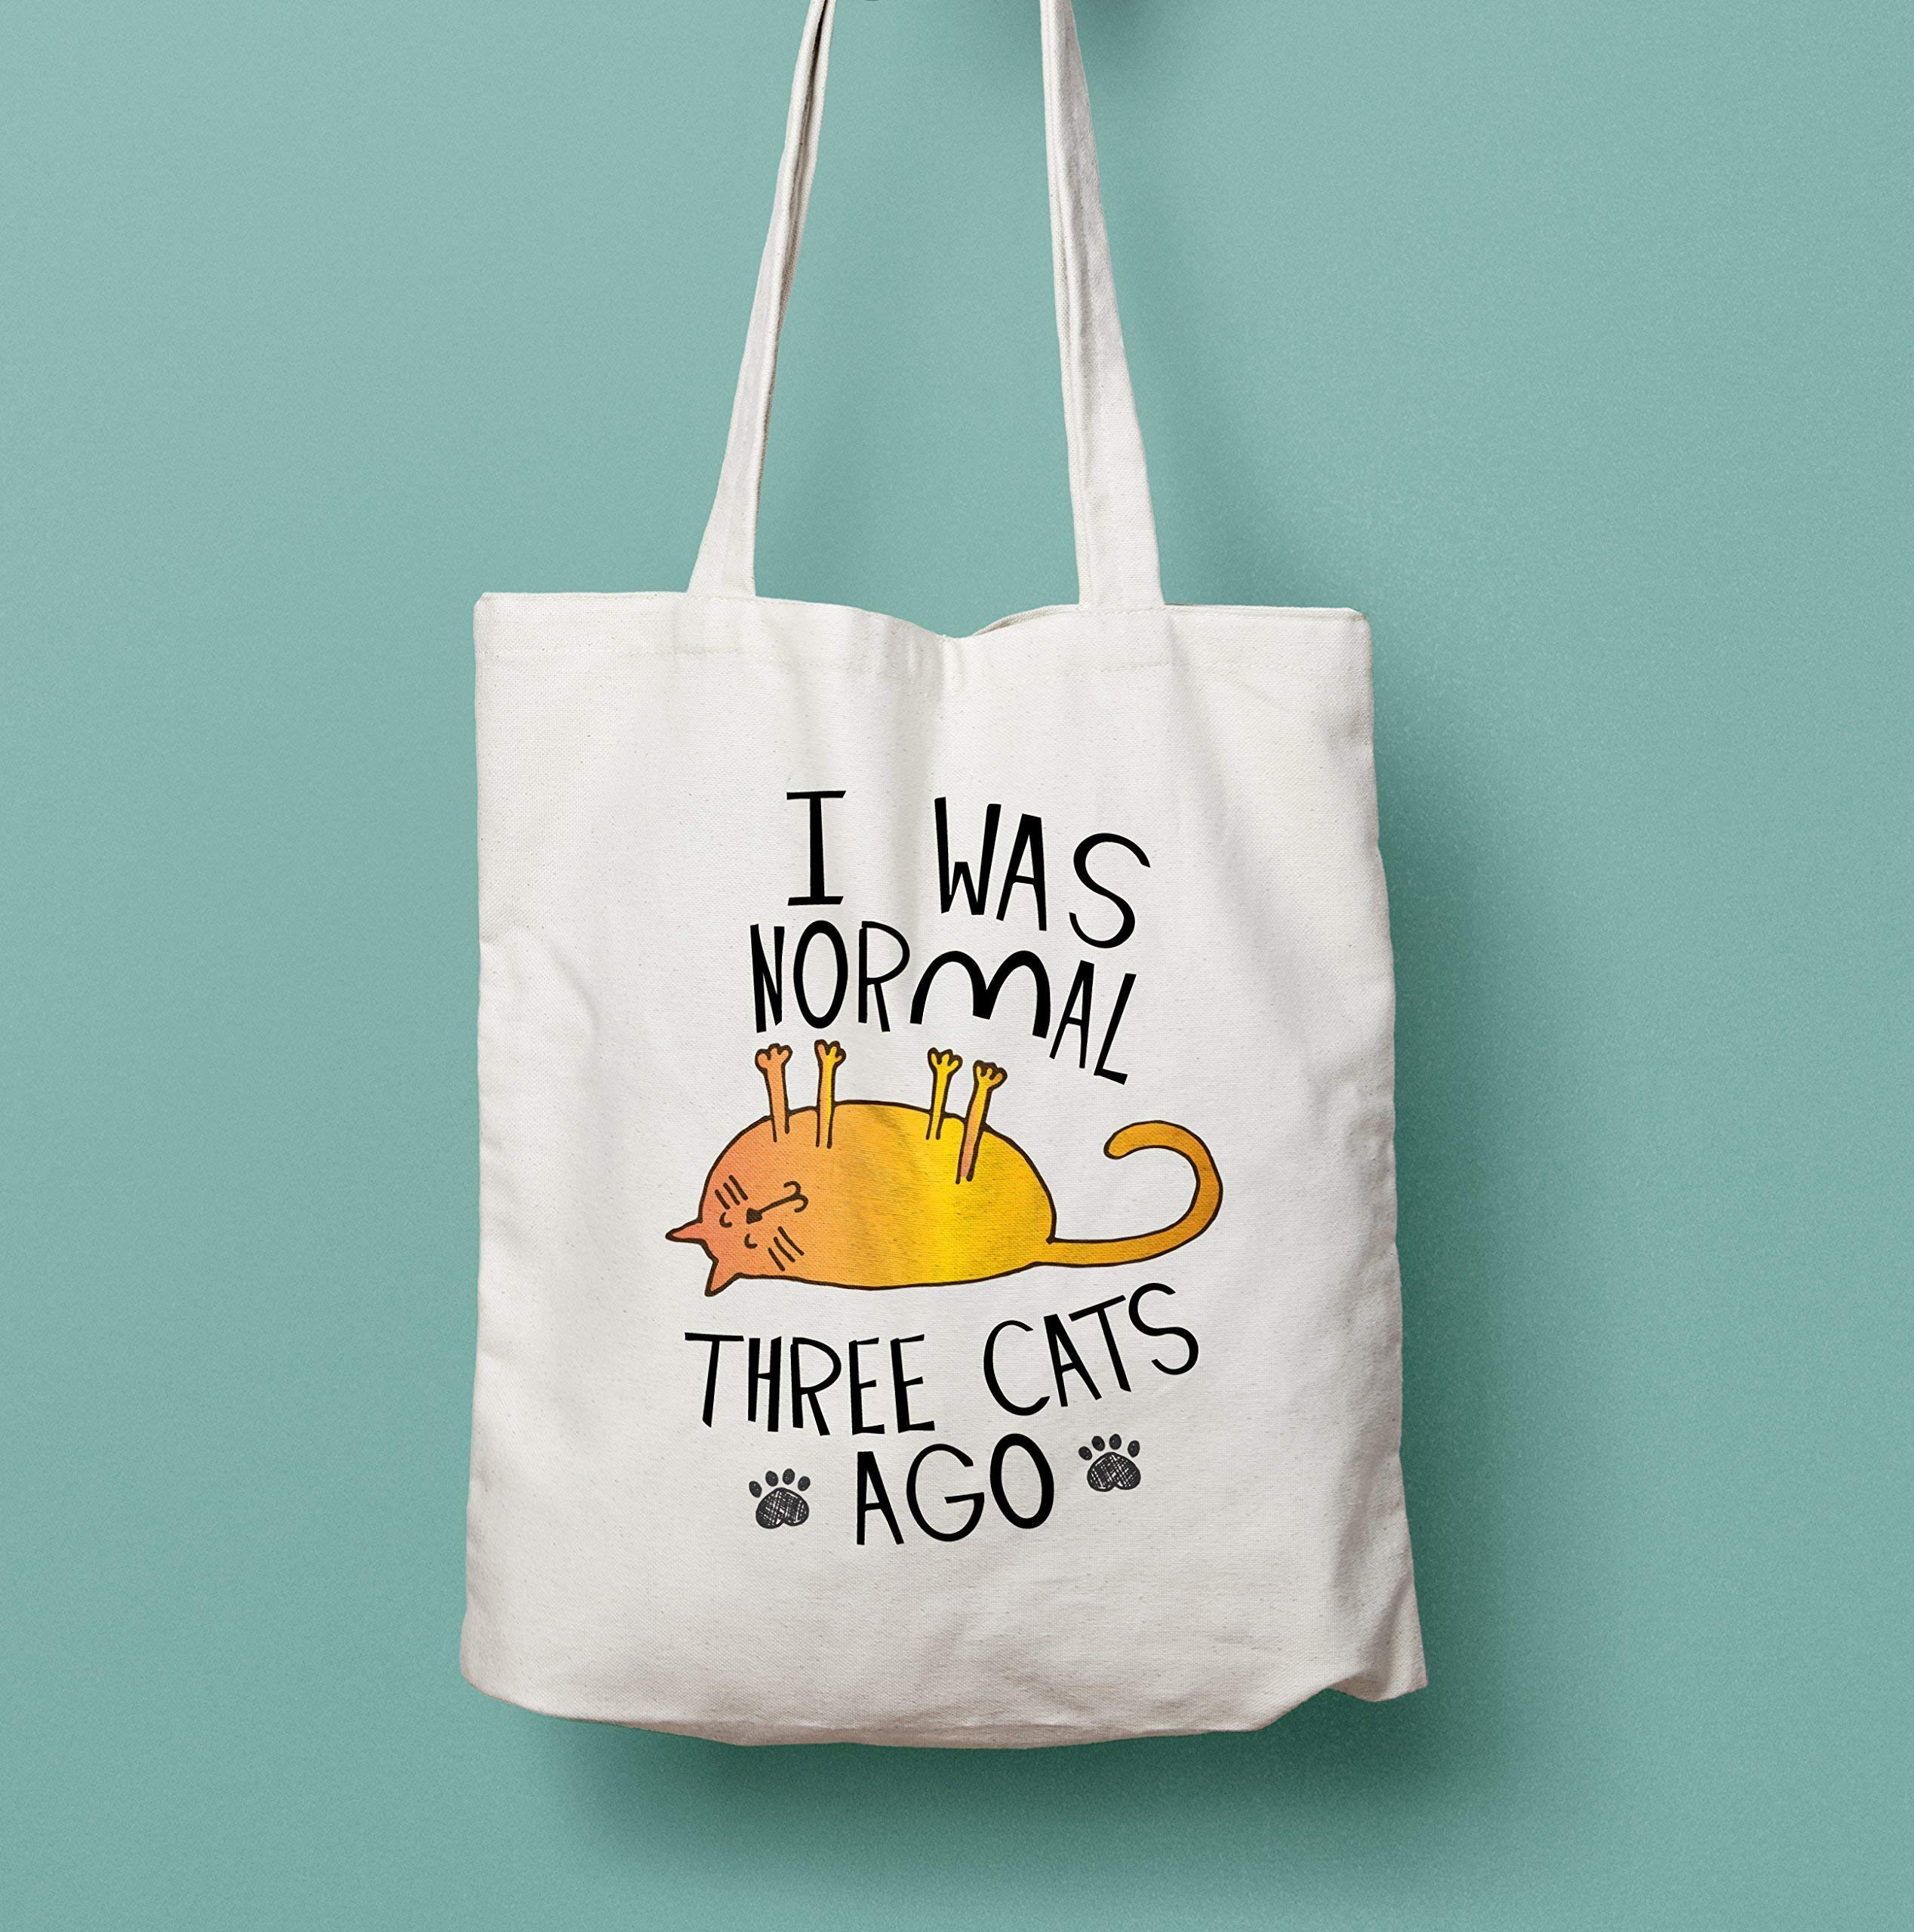 I Was Normal Three Cats Ago Shopping Tote Bag - handmade-bags